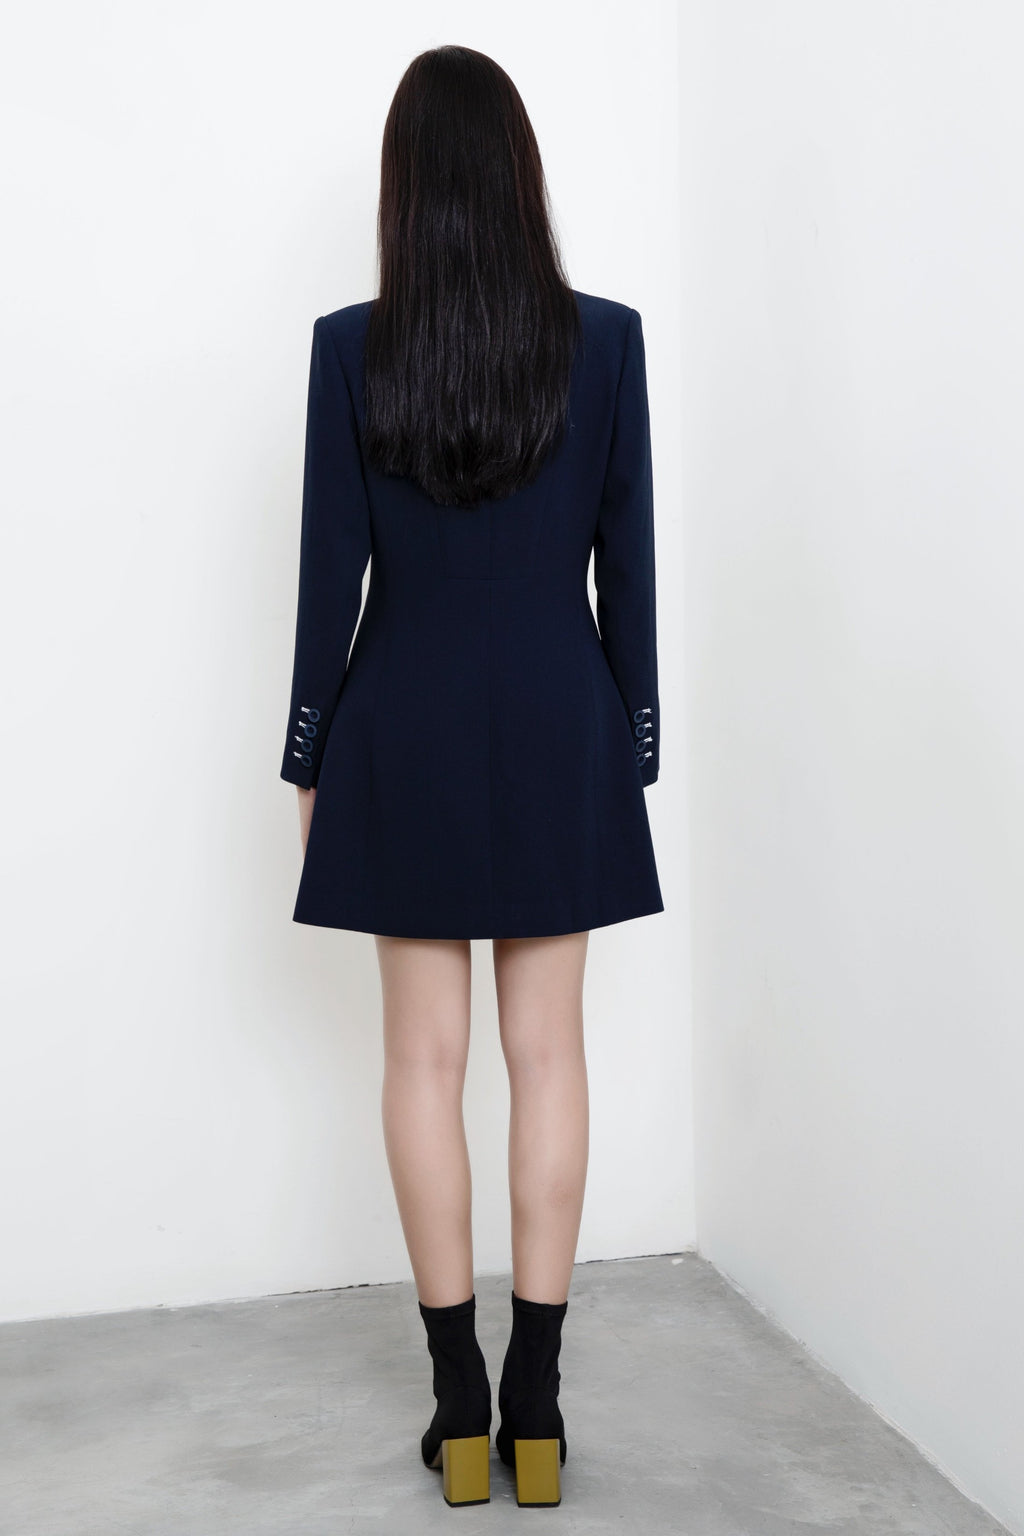 FEVER WANG double-breasted triangle collar dress